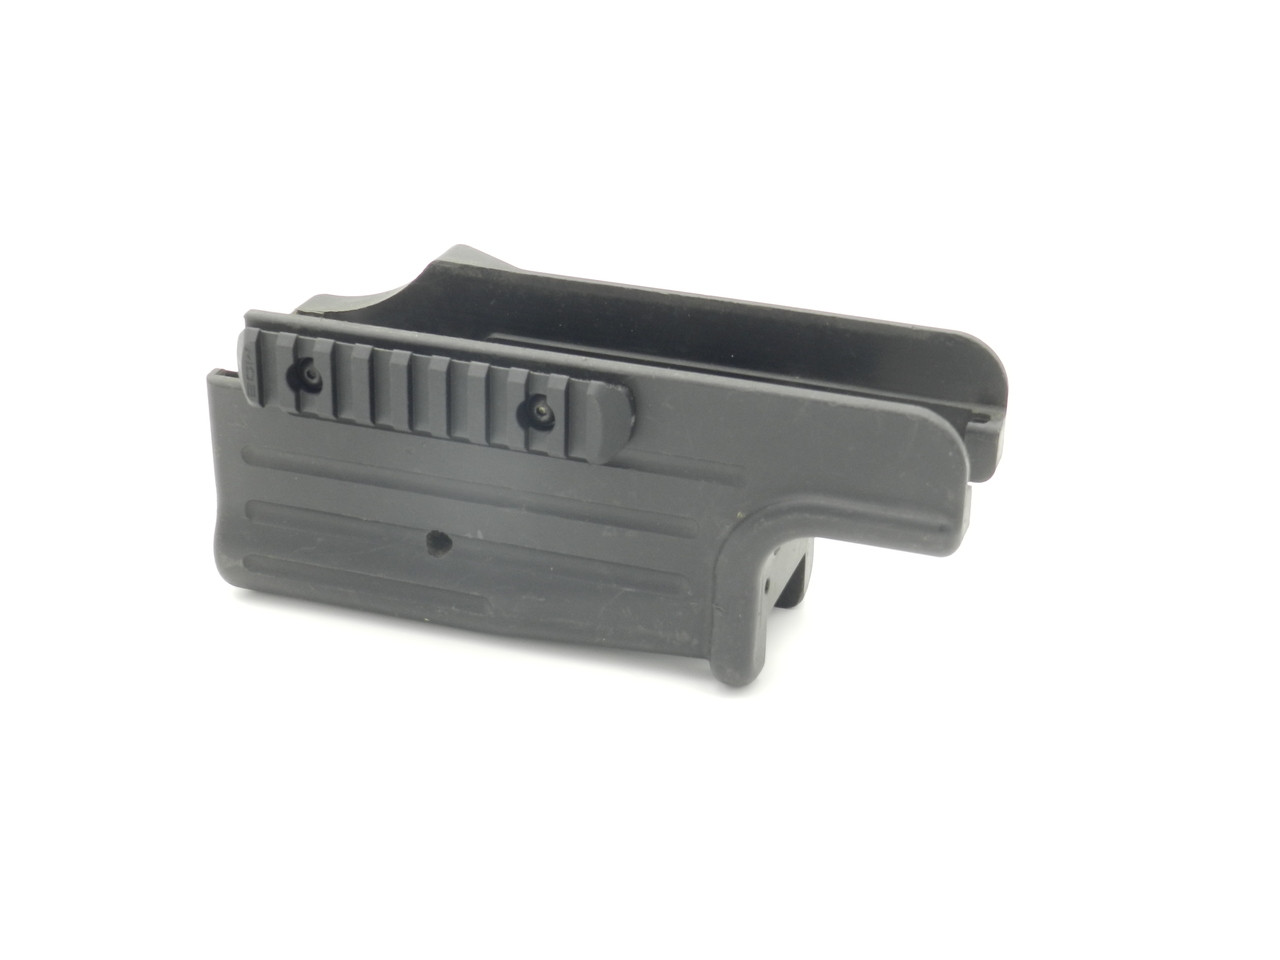 for use with the High Rail position M249 brass and link catcher.